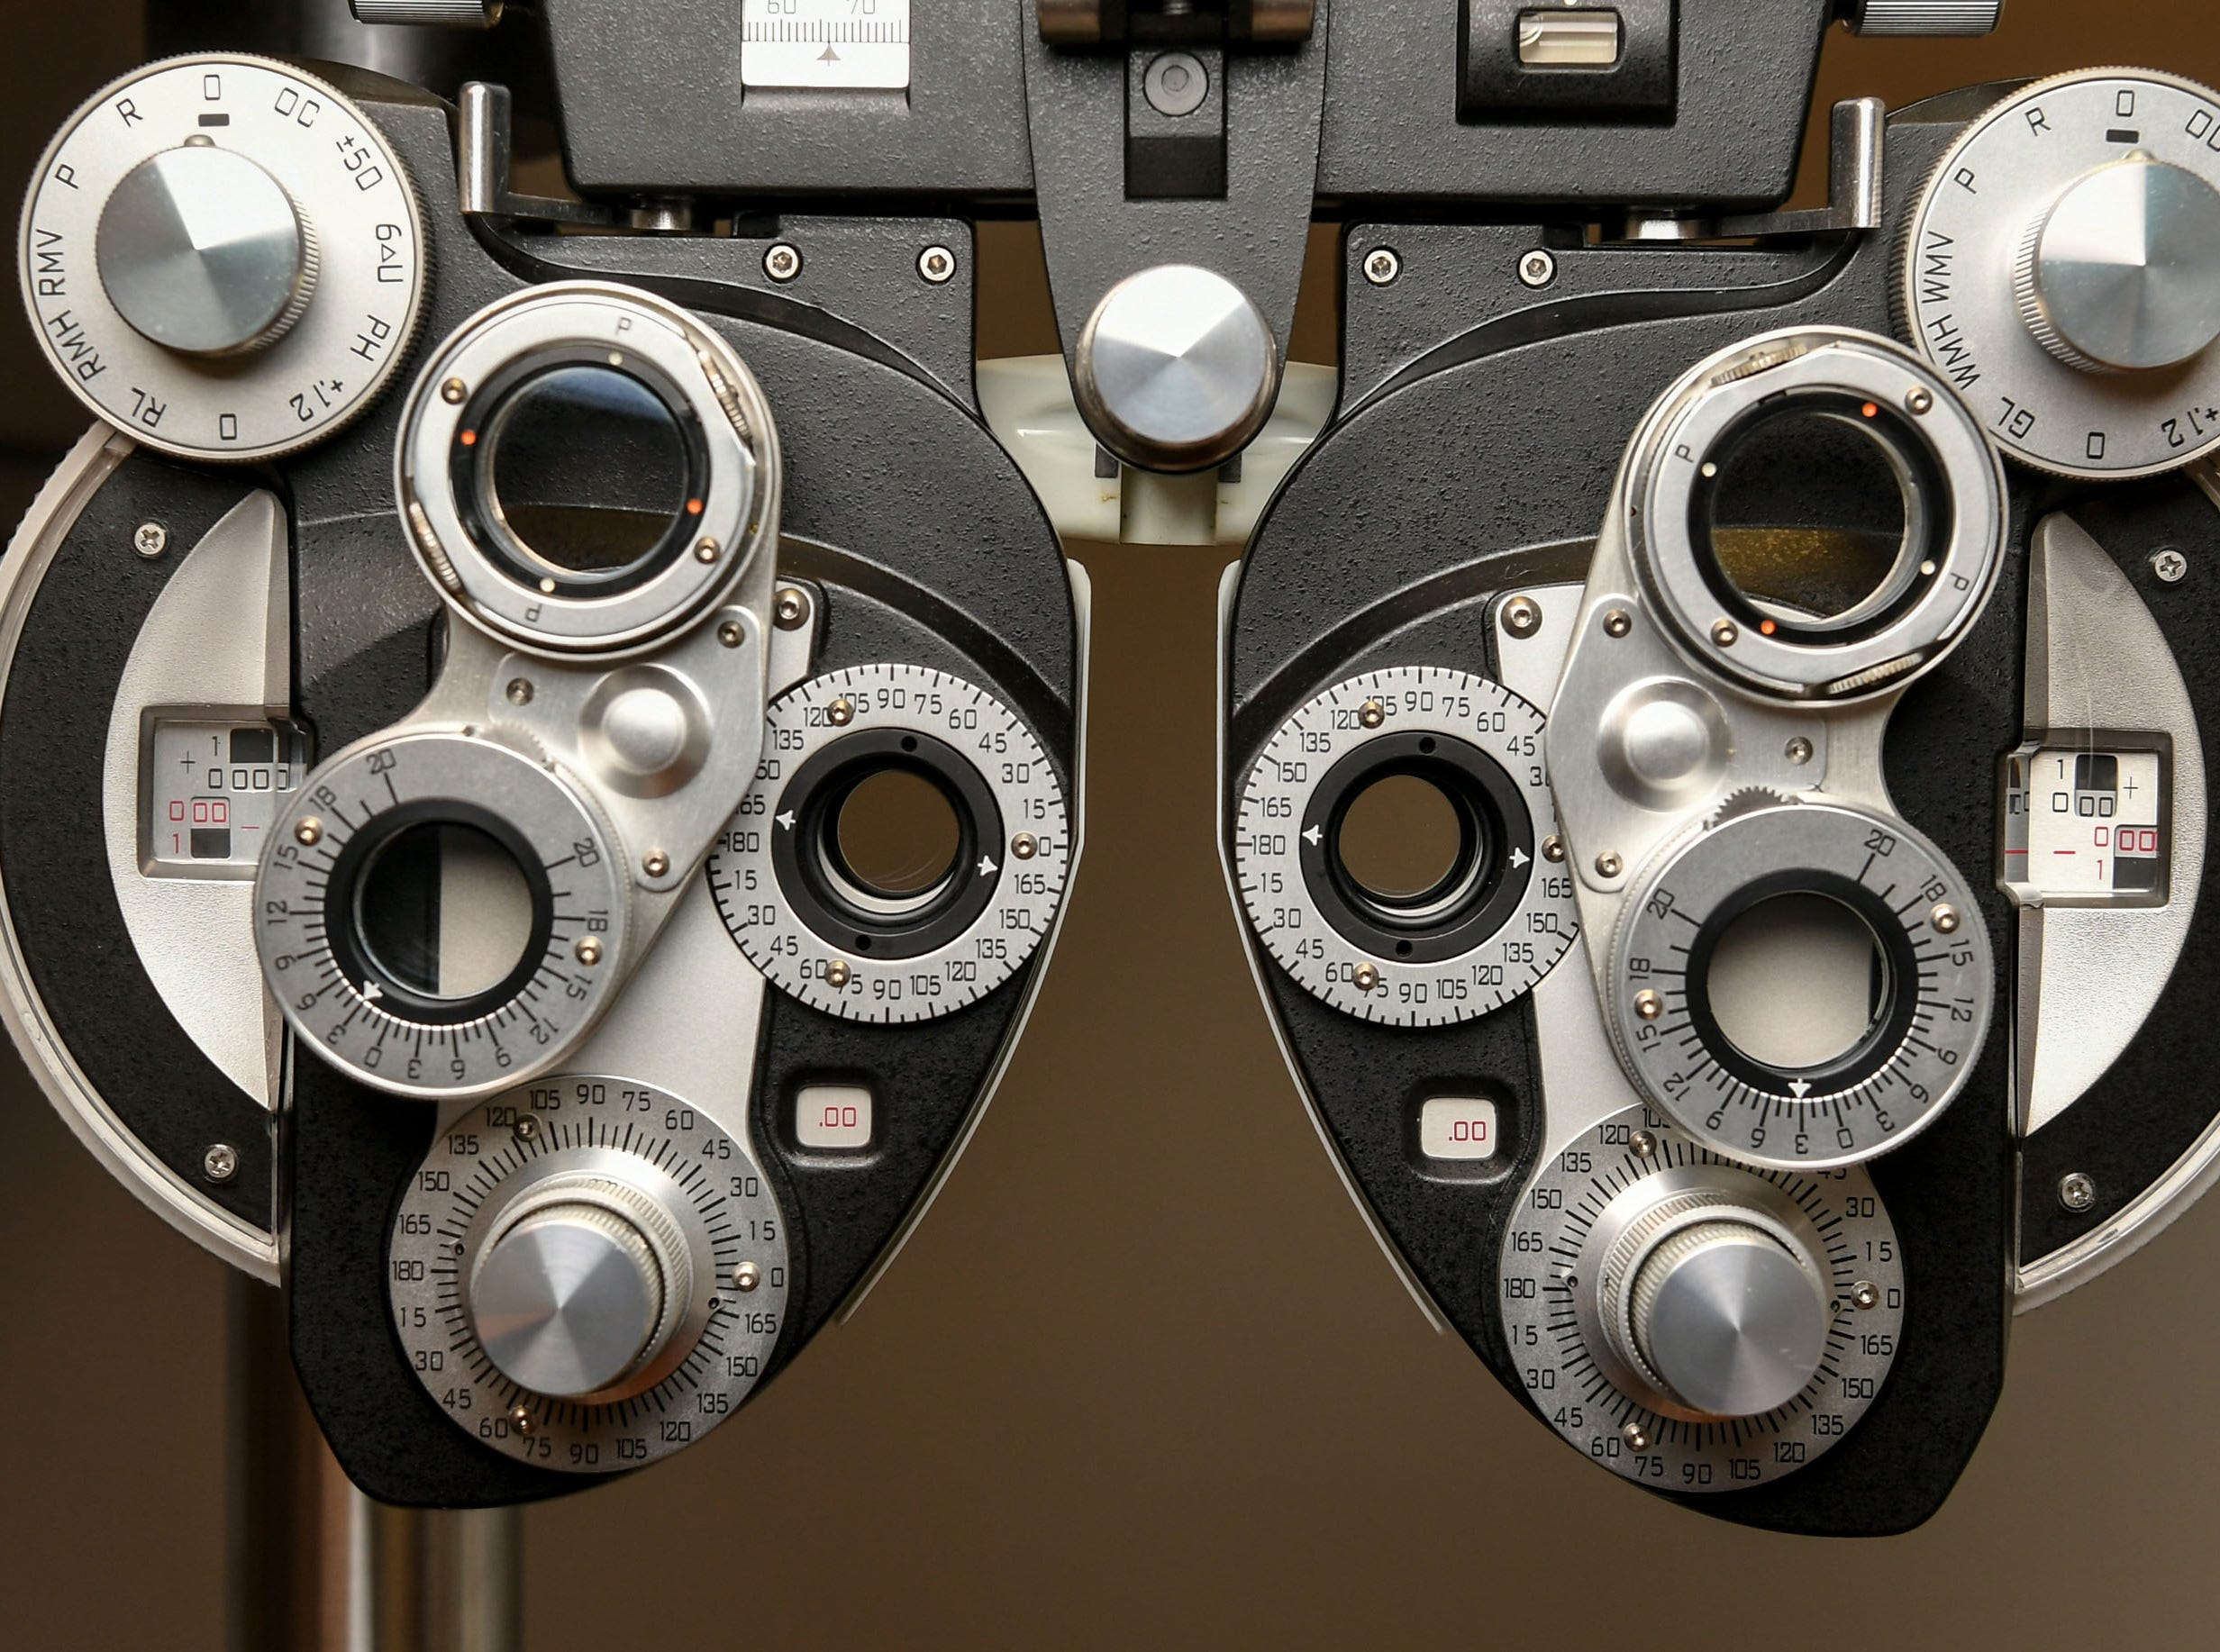 Anderson Free Clinic added eye care with Dr. Jim Chamberlain, who uses a phoropter as one of his tools to check vision.